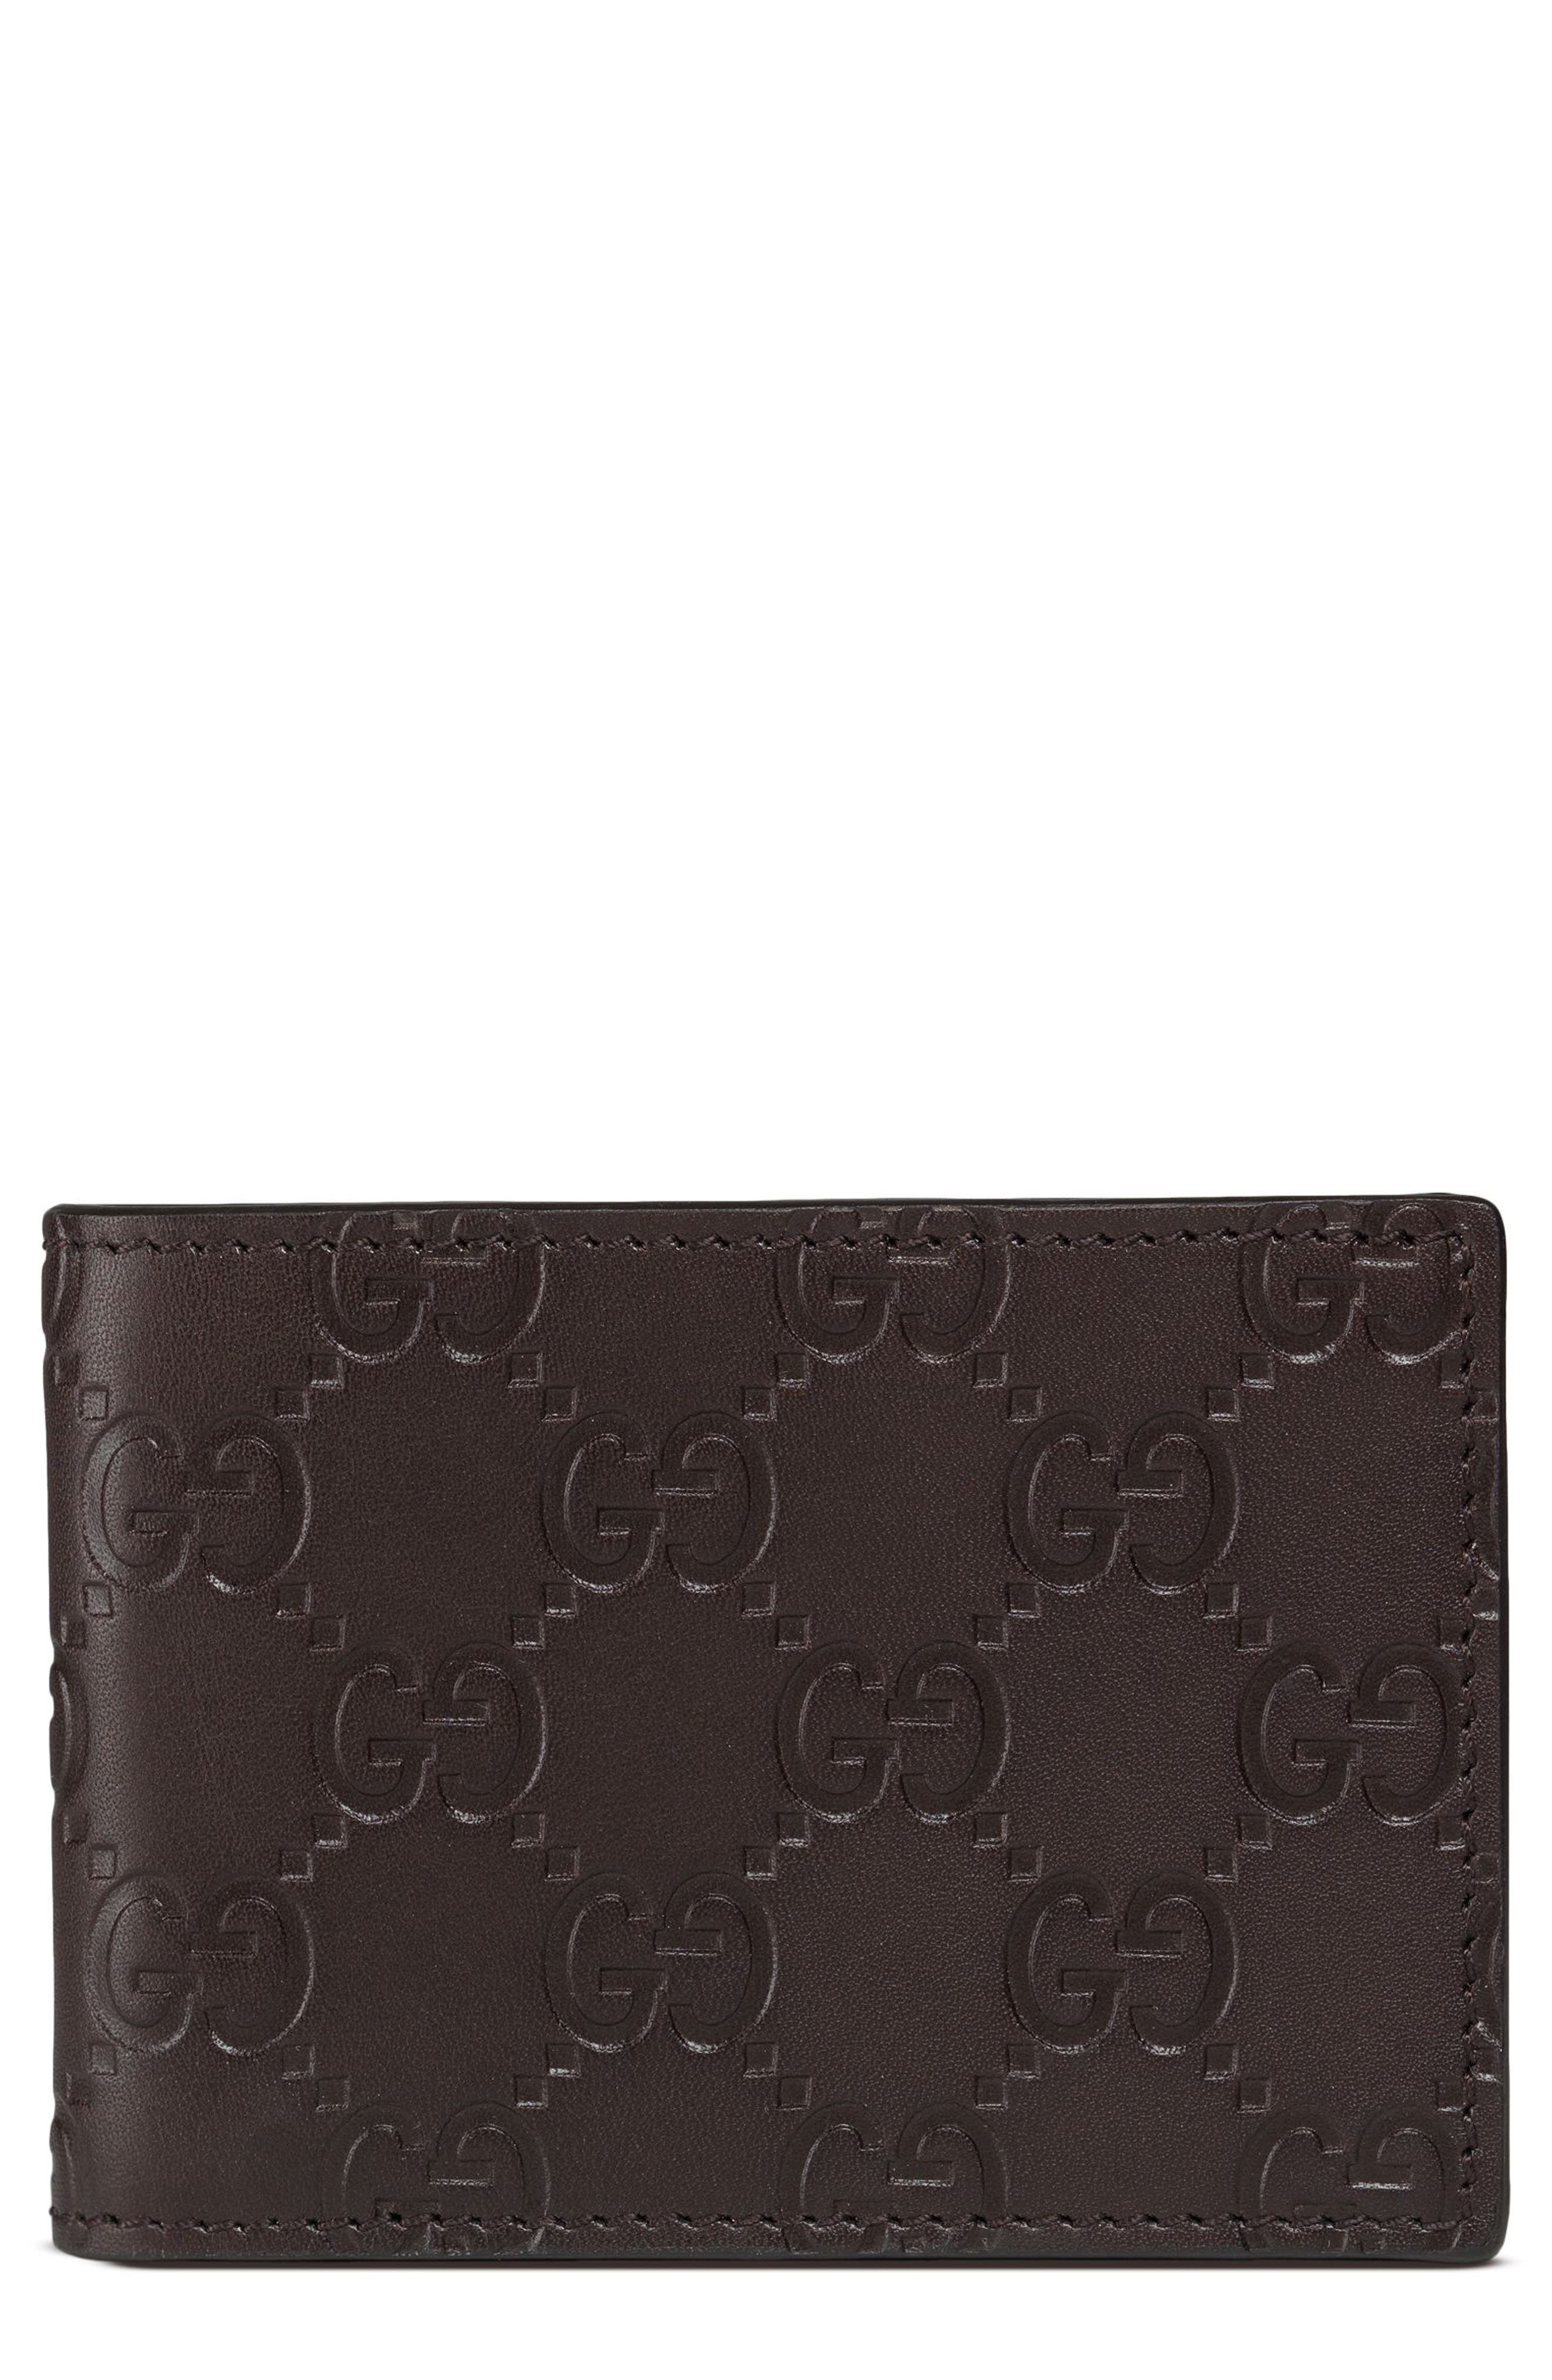 Gucci Avel Wallet